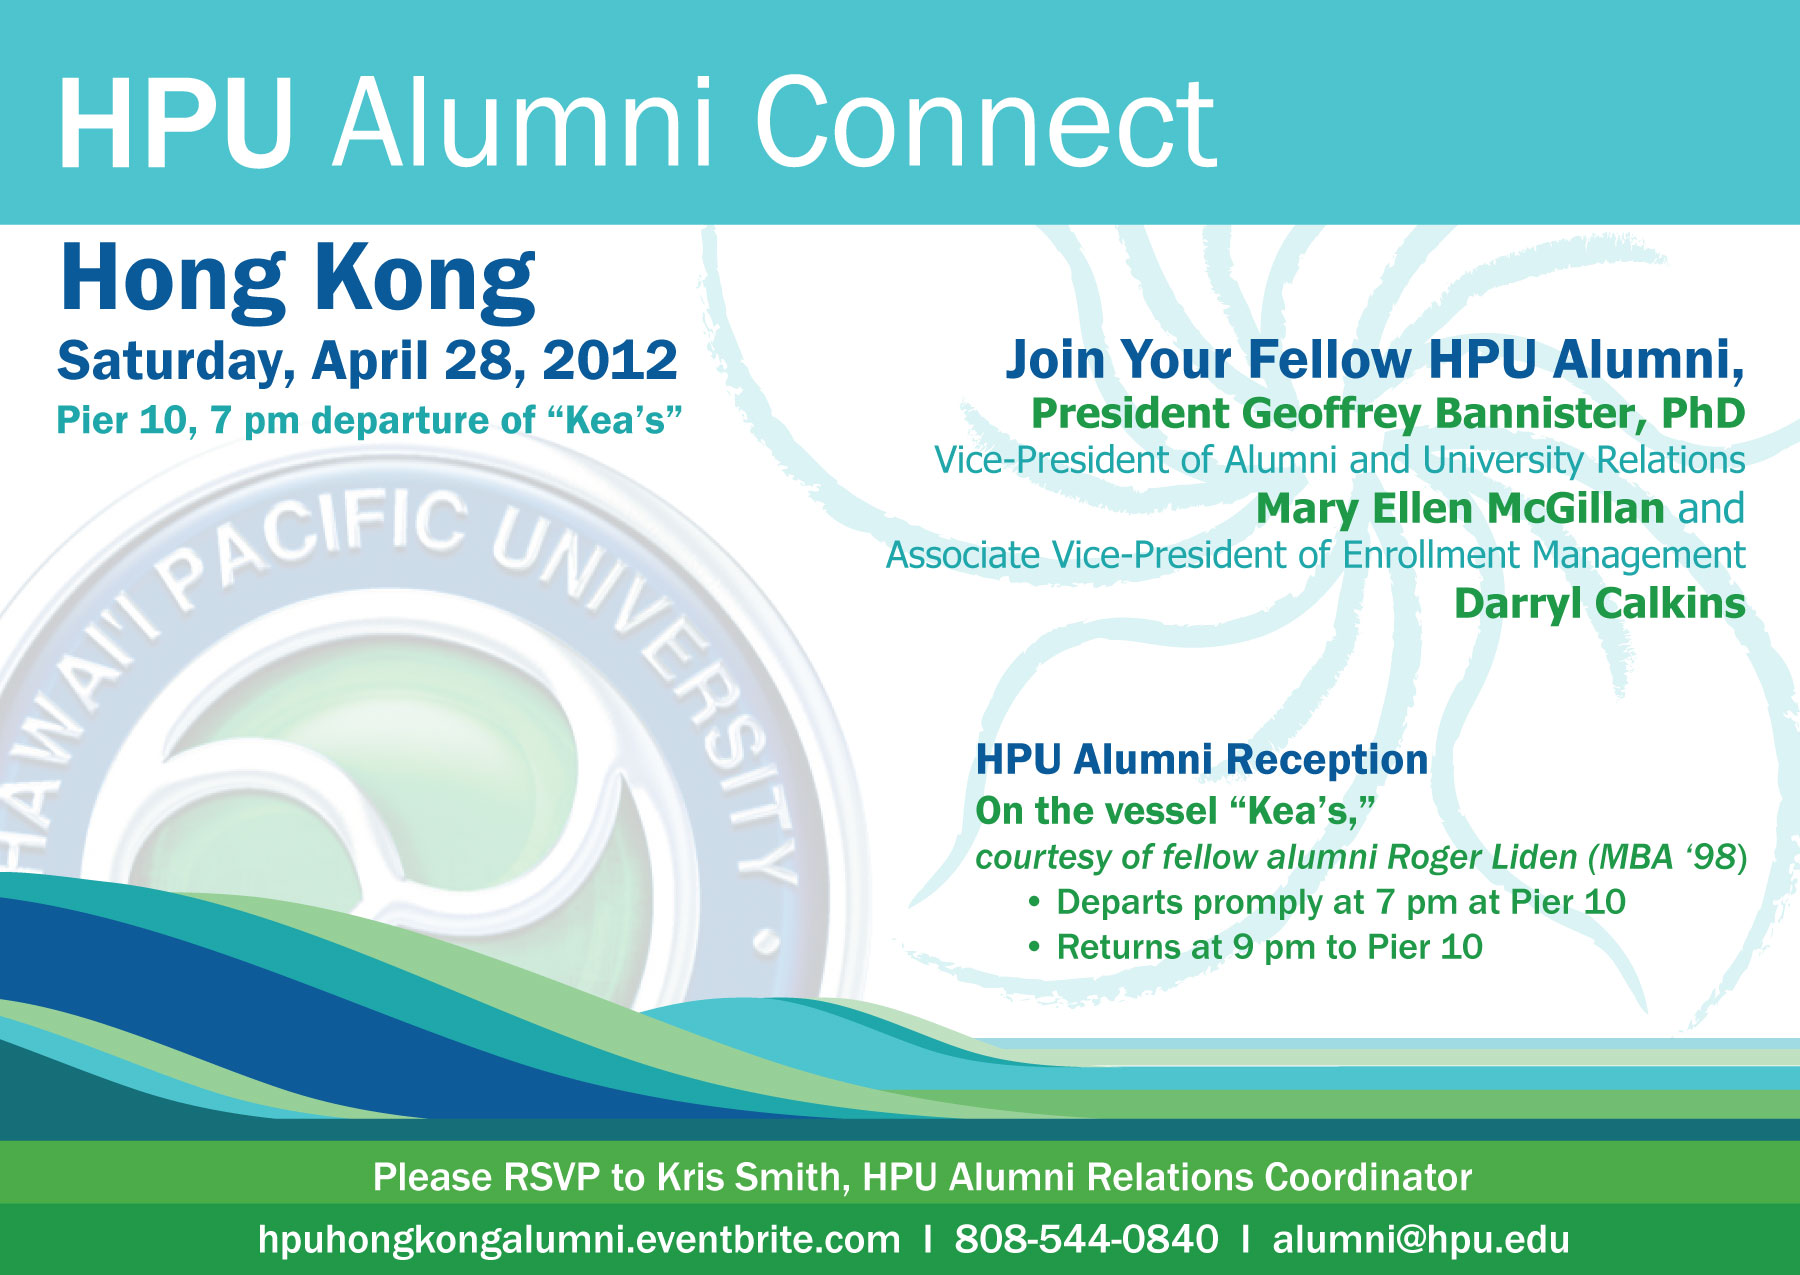 Hong Kong Alumni Reception